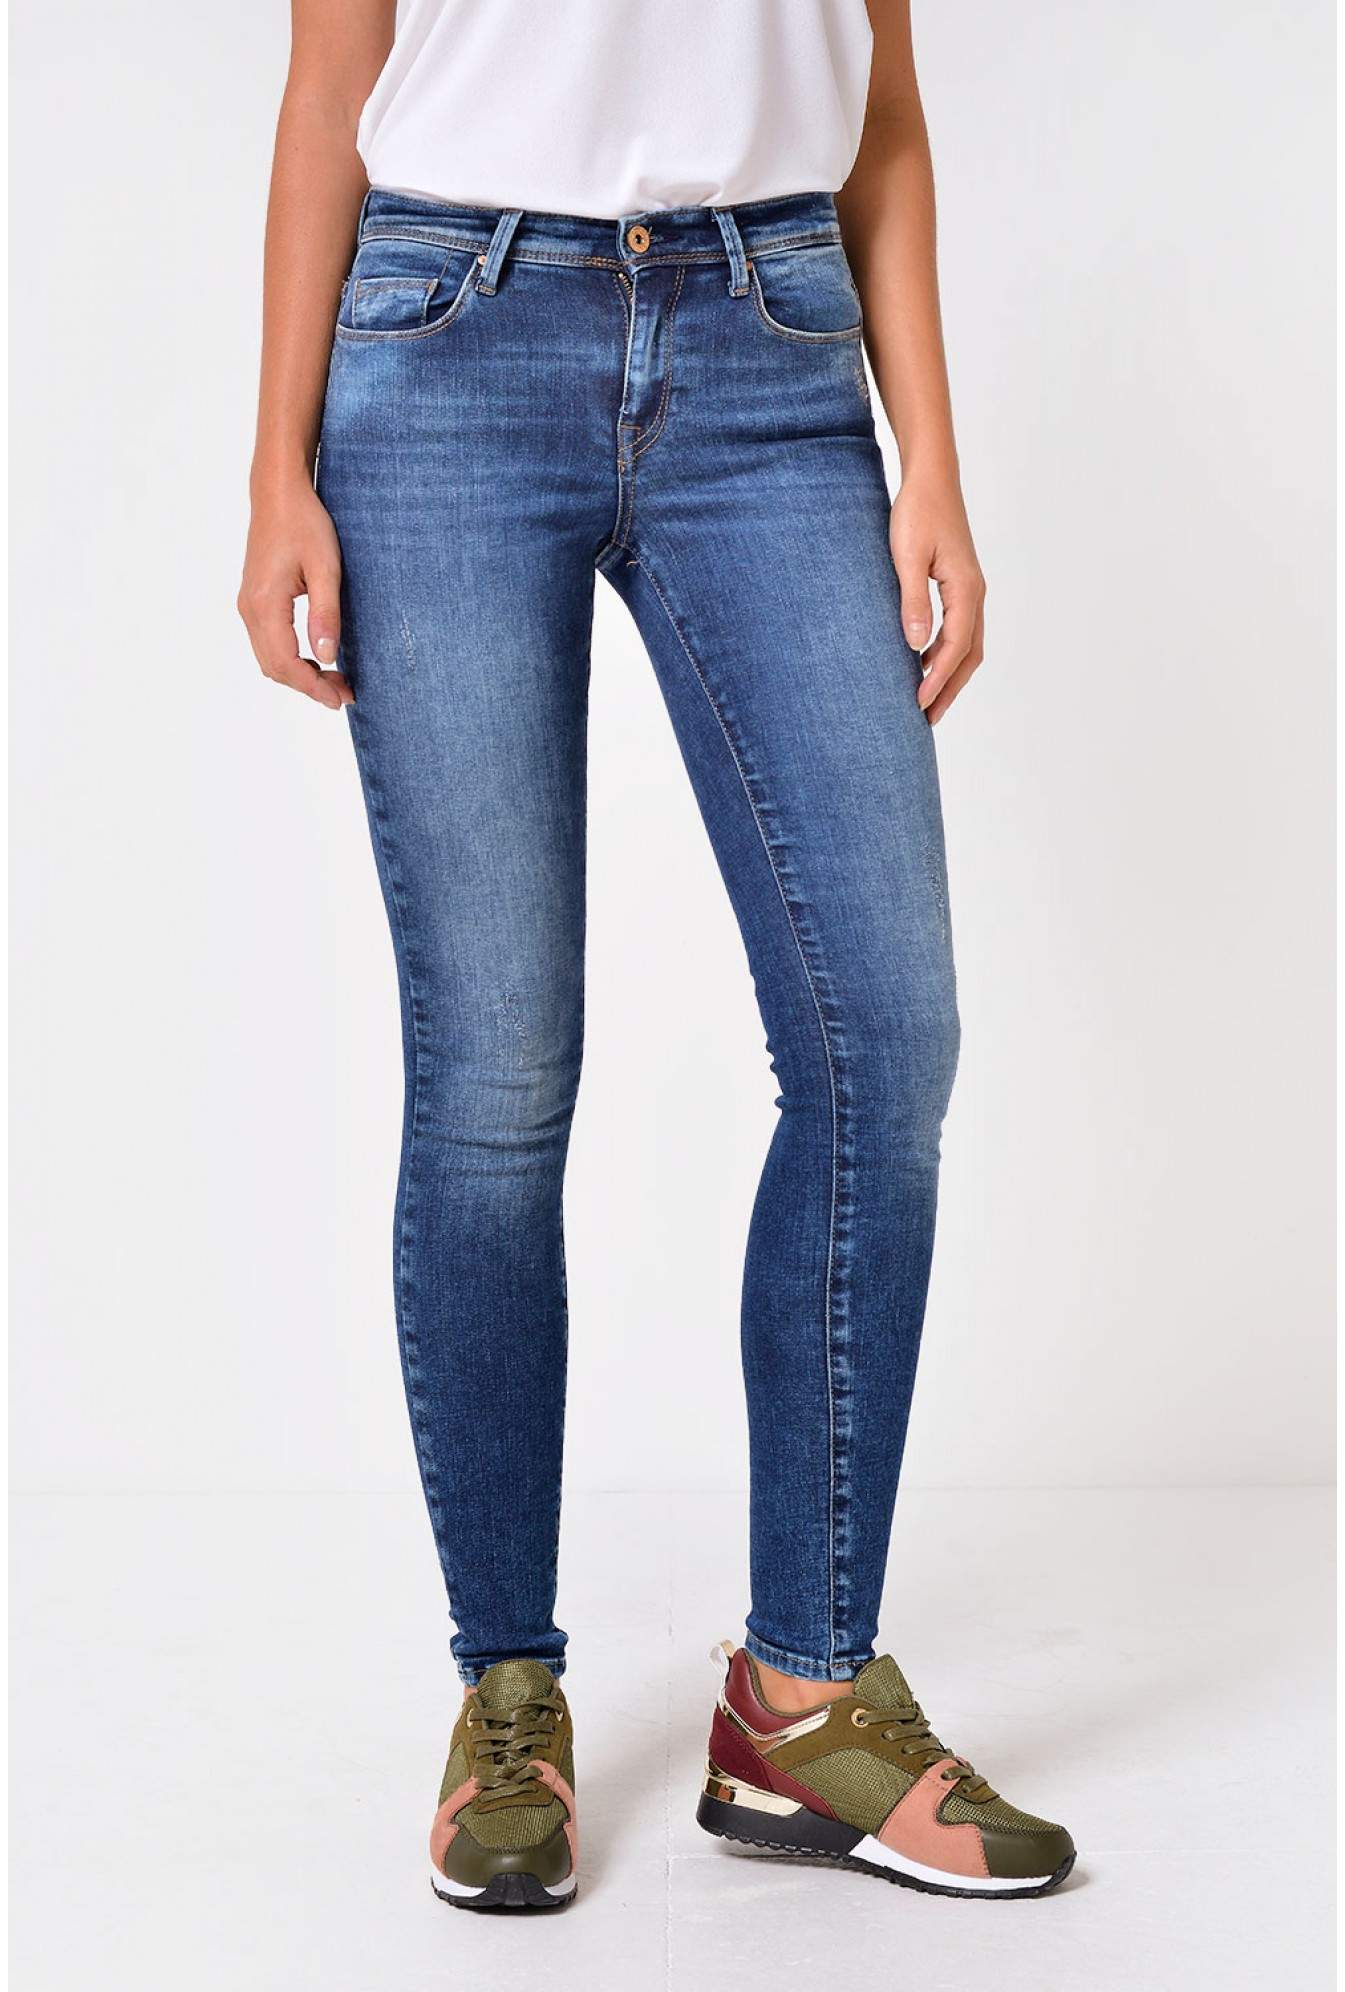 318163eb68c8d More Views. Shape Up Short Skinny Jeans in Dark Wash Denim. Only